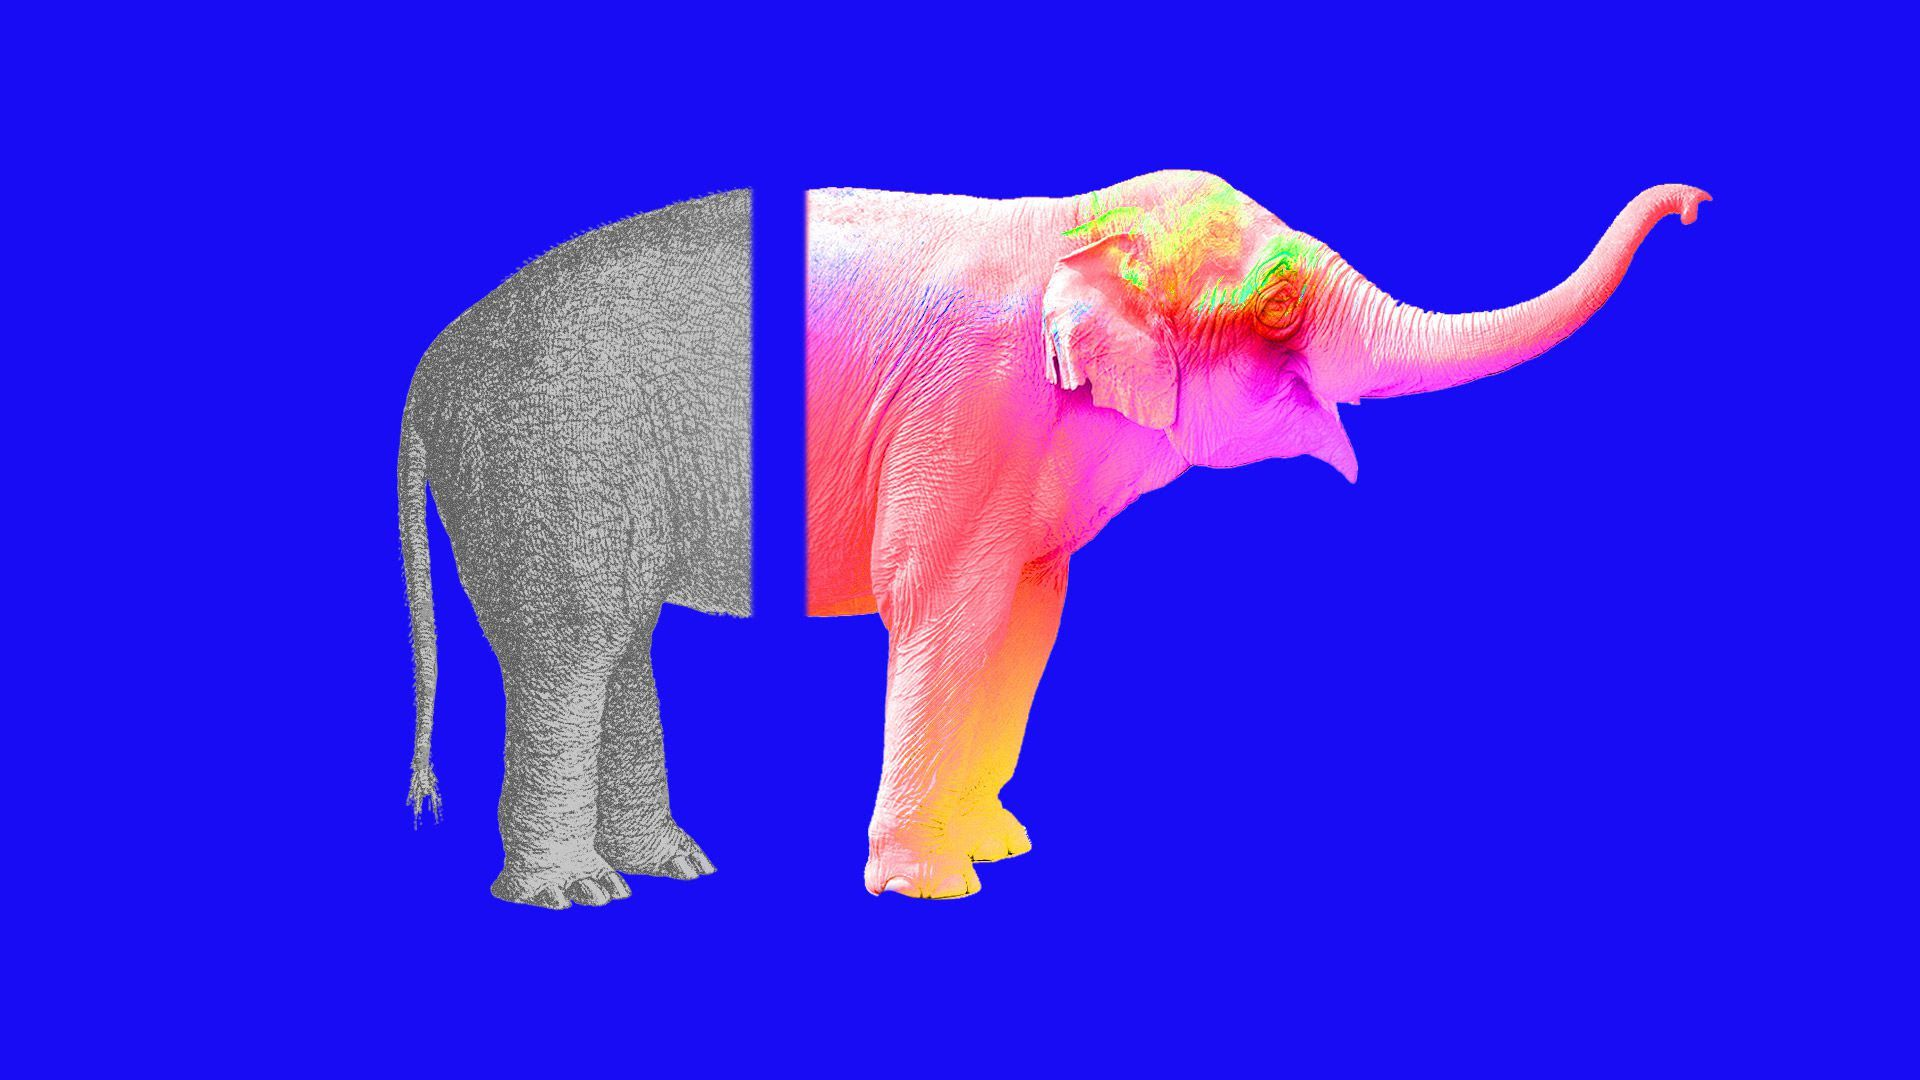 An illustration of a Republican elephant cut down the middle